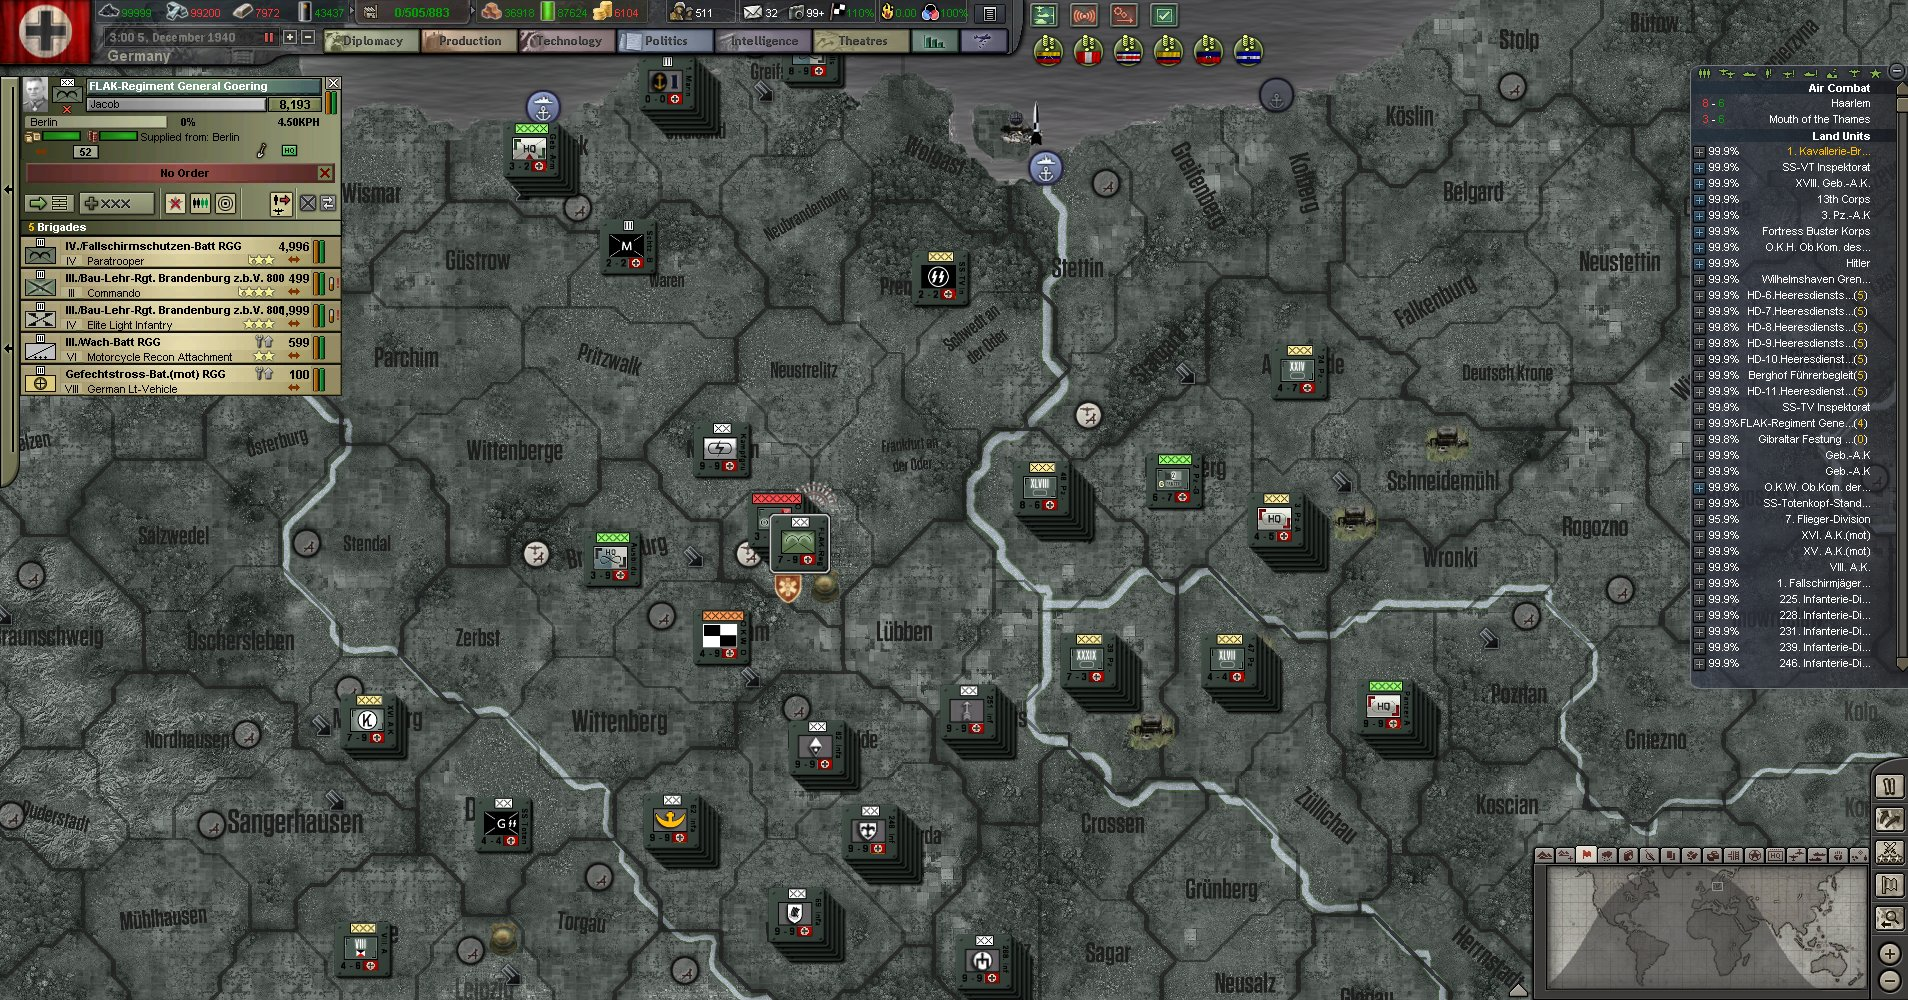 The Thousand Year Reich : Chapter 3, The Battle For the